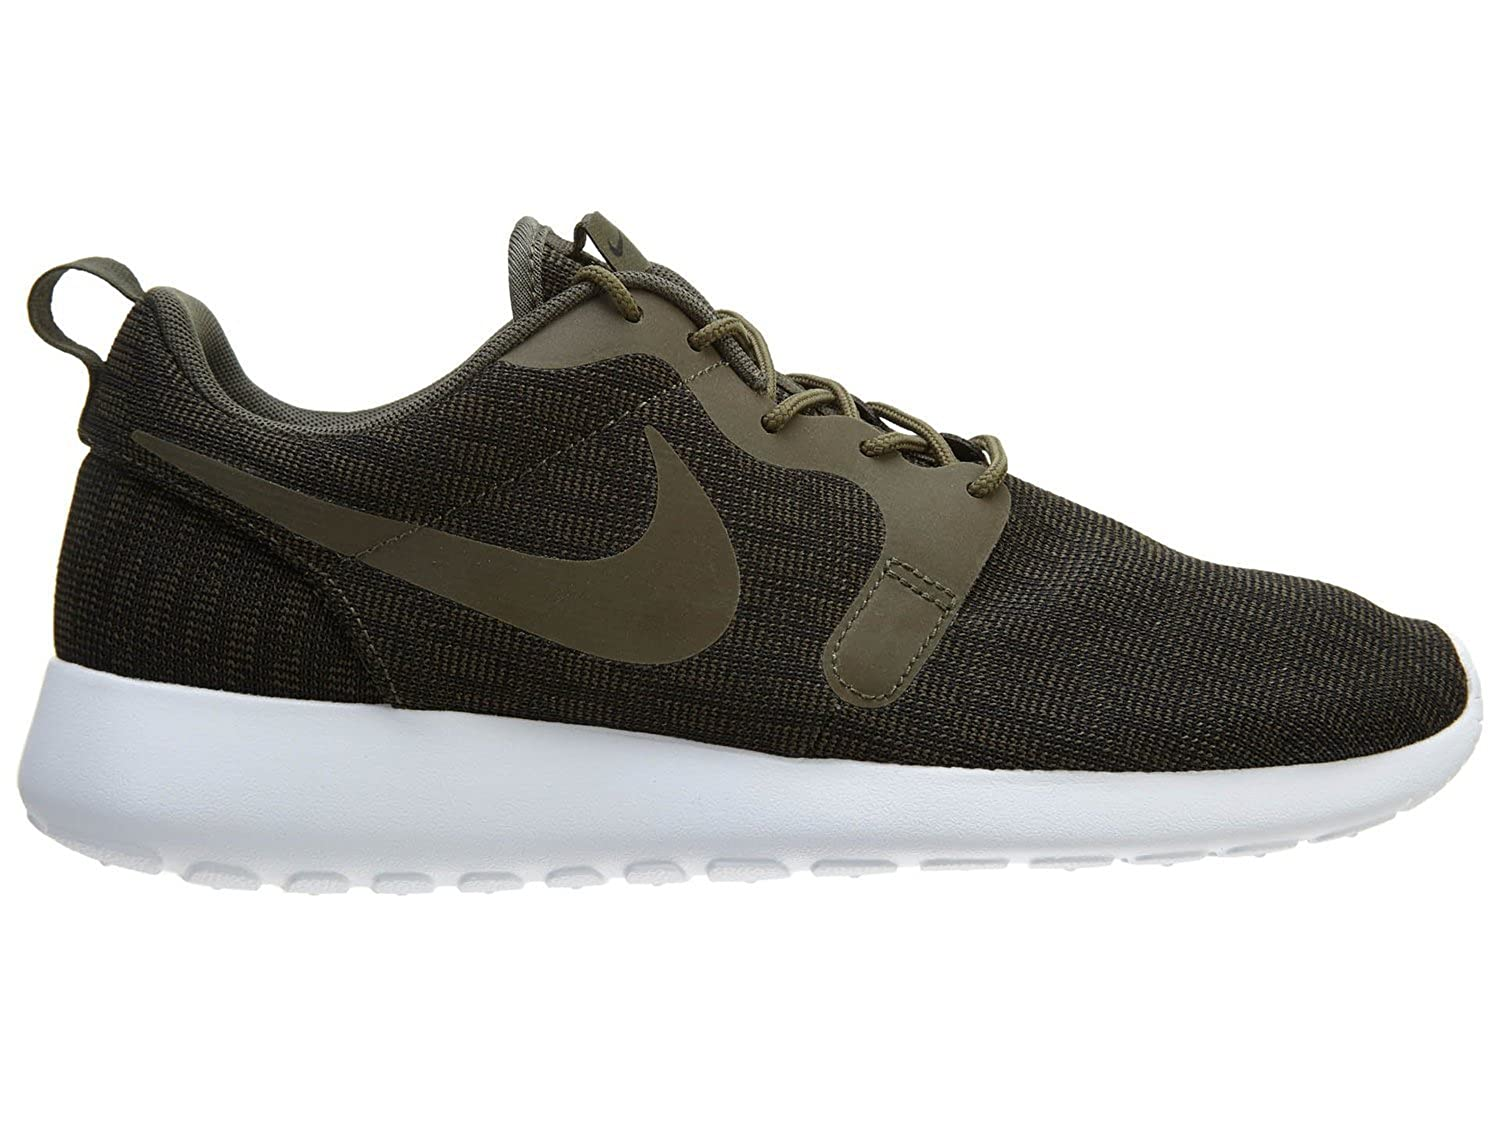 318a68007332 Amazon.com  Nike Roshe One KJCRD Men s Running Shoes Khaki 777429 300 Size  11  Shoes